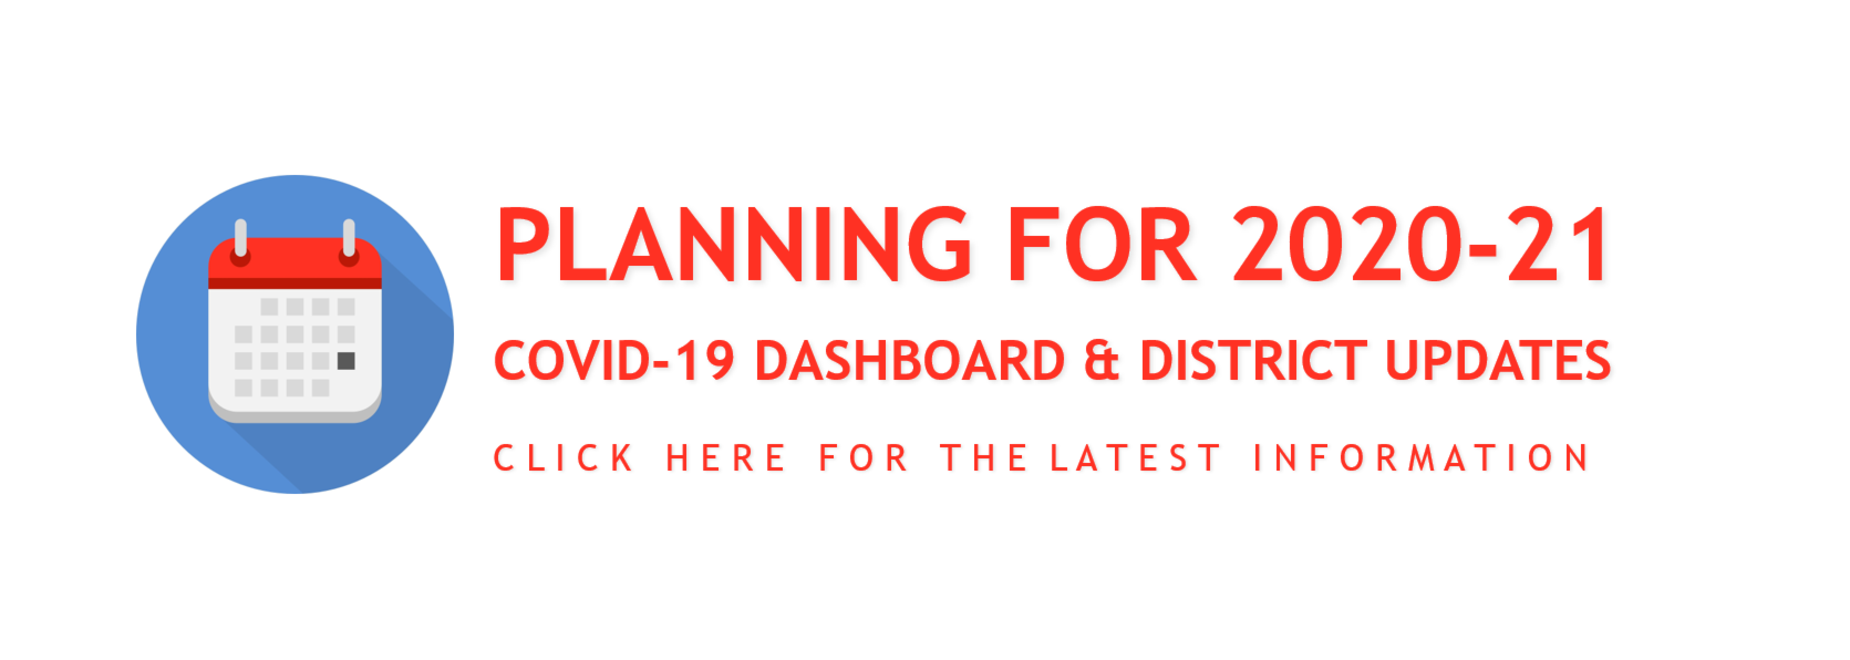 Planning for 2020-21, Covid-19 Dashboard & District Updates, Click here for the latest information